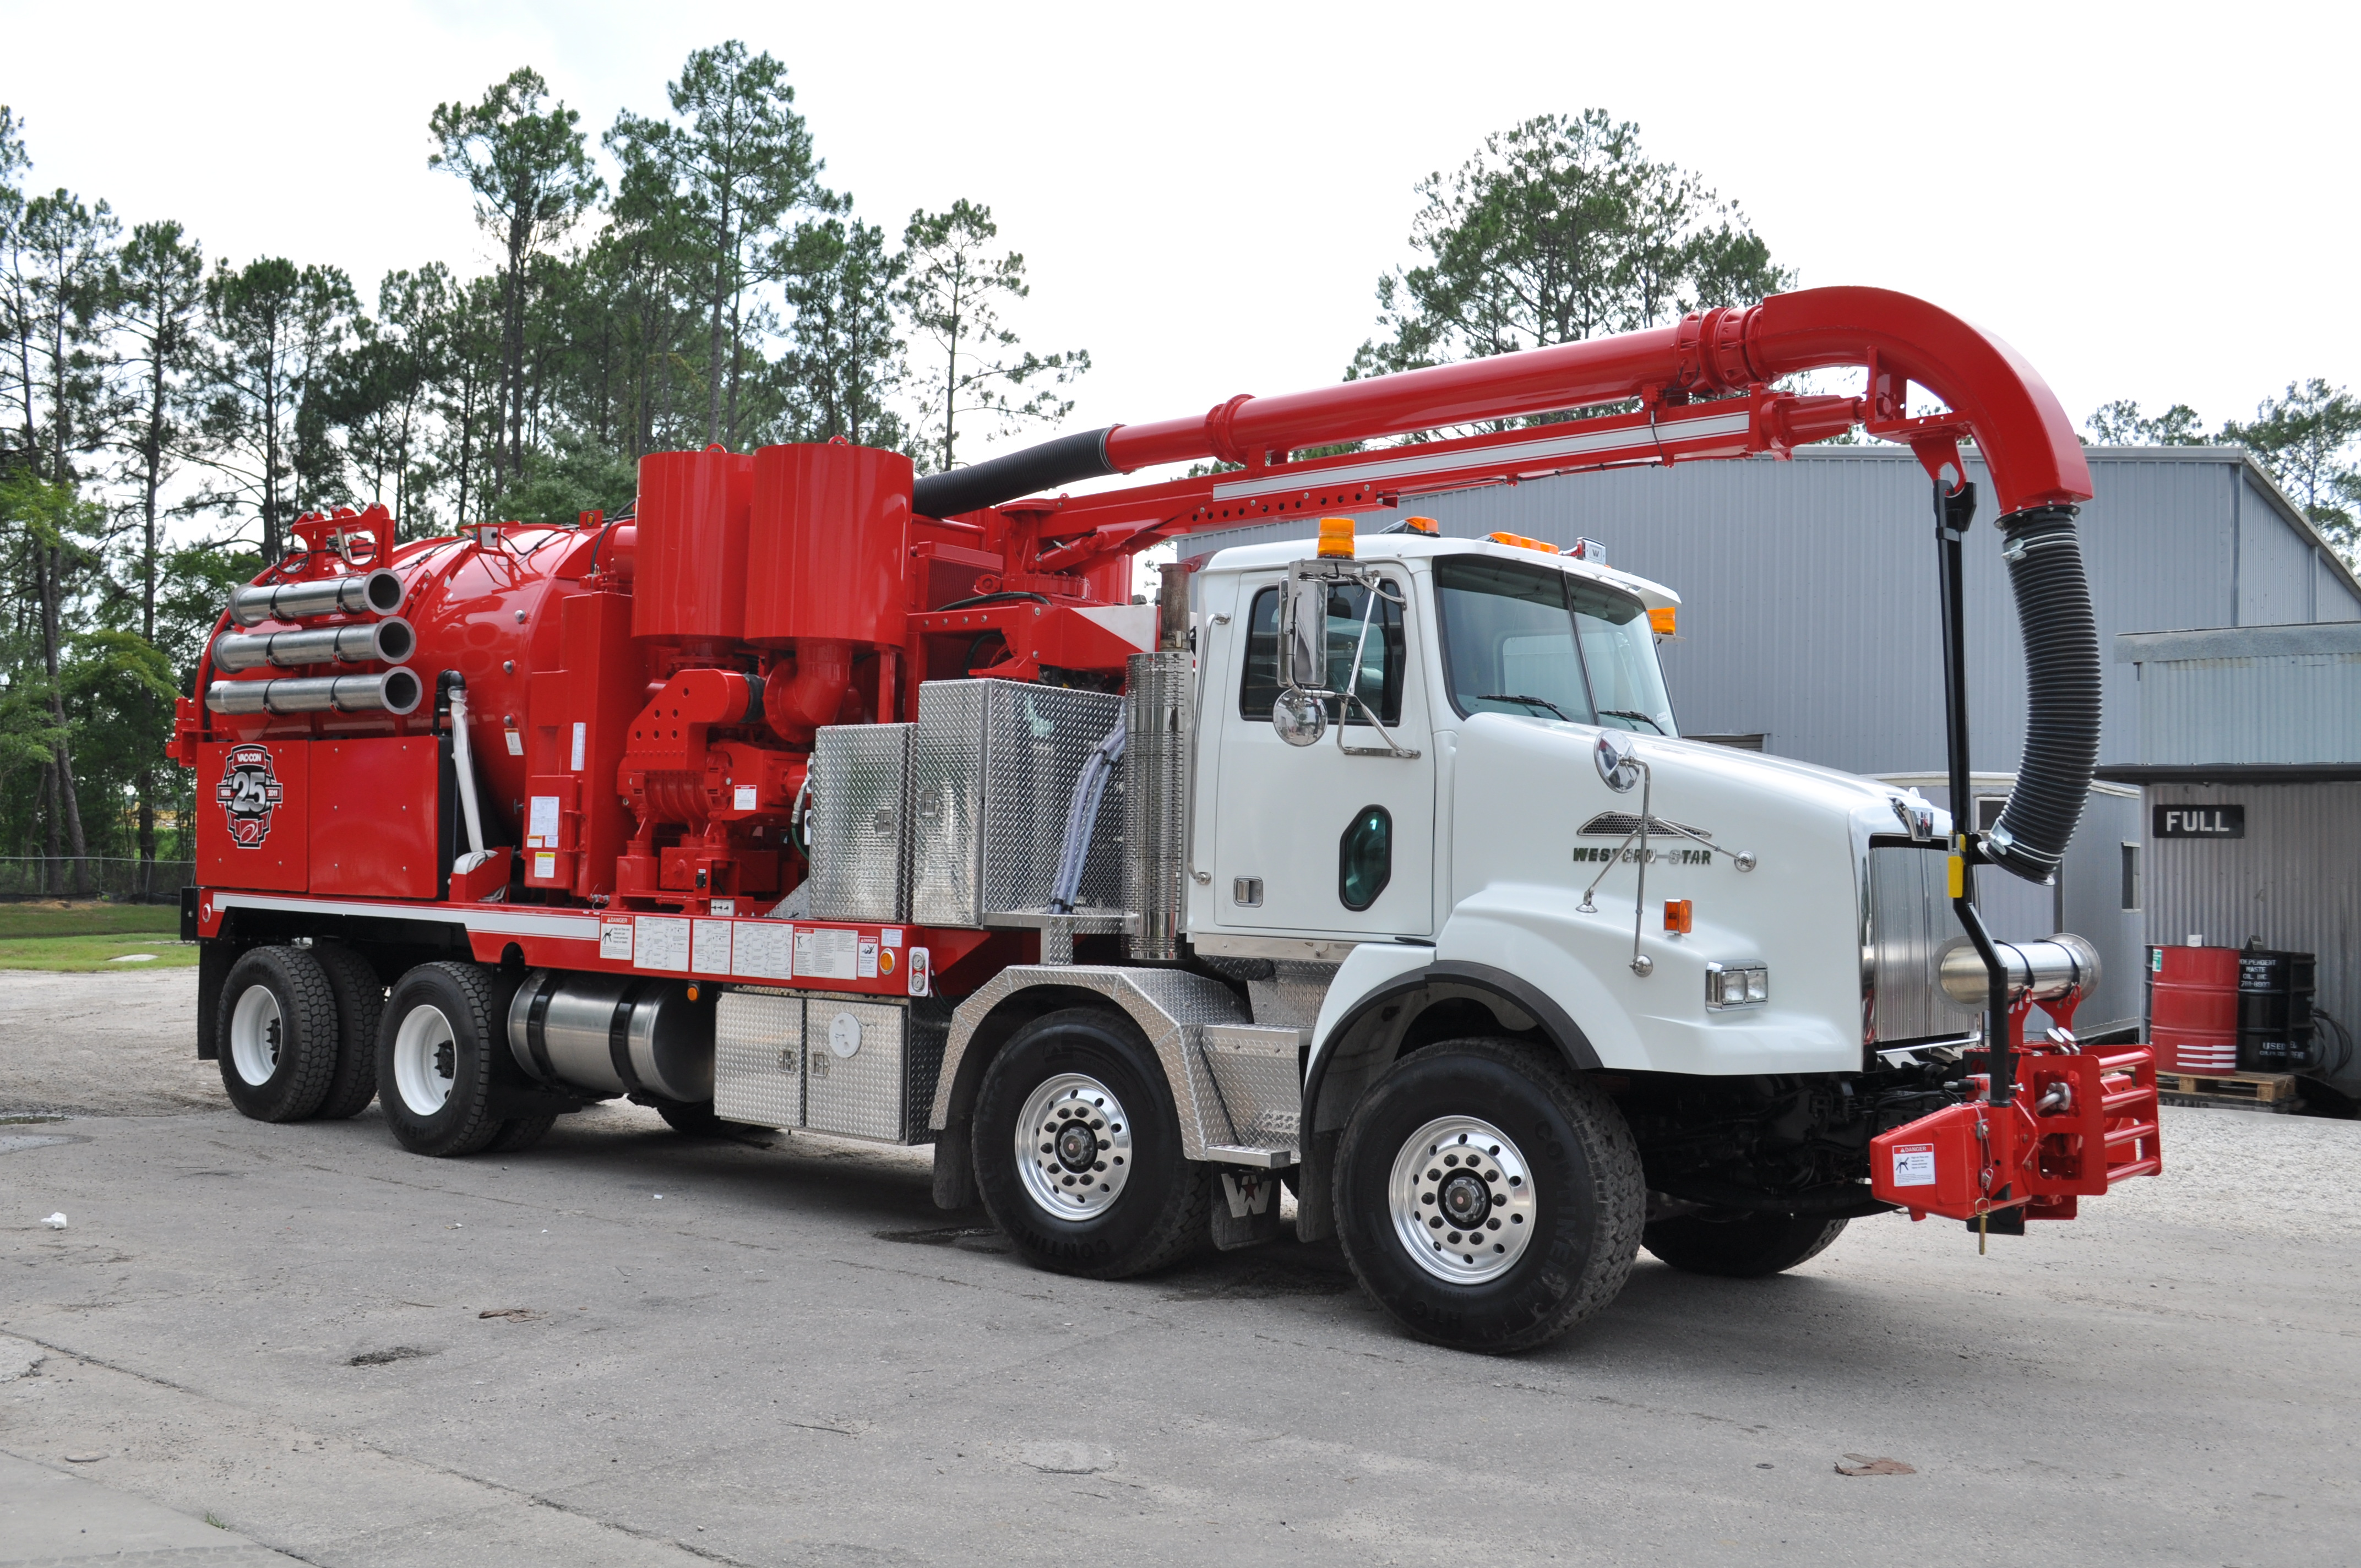 Awesome Hydro Excavation Truck   Vac Con®